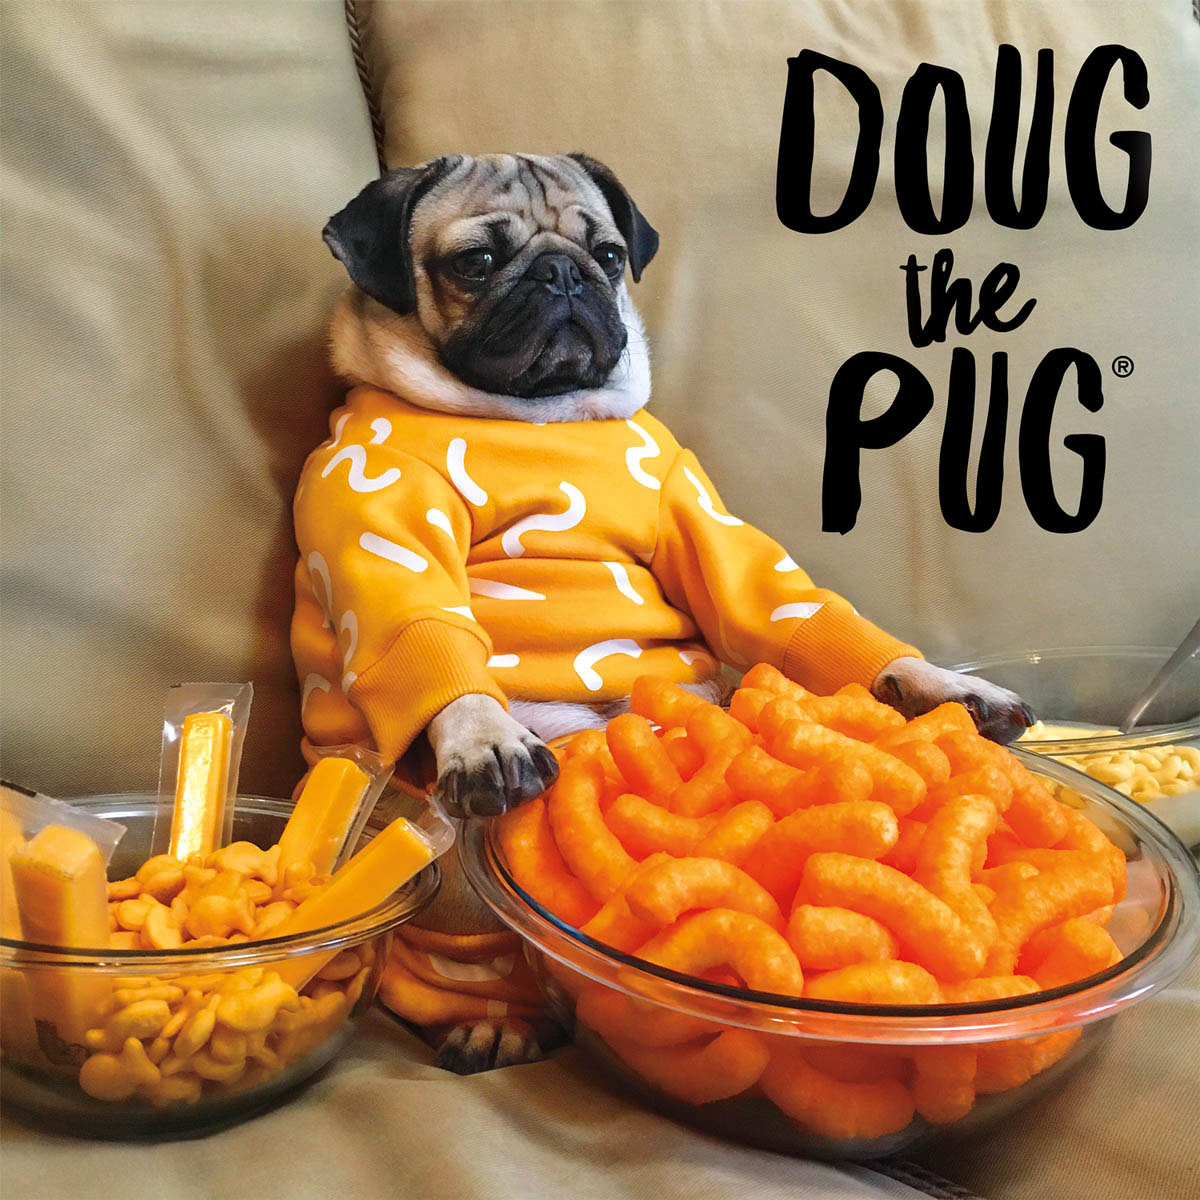 Cheesy Doug Food and Drink Jigsaw Puzzle